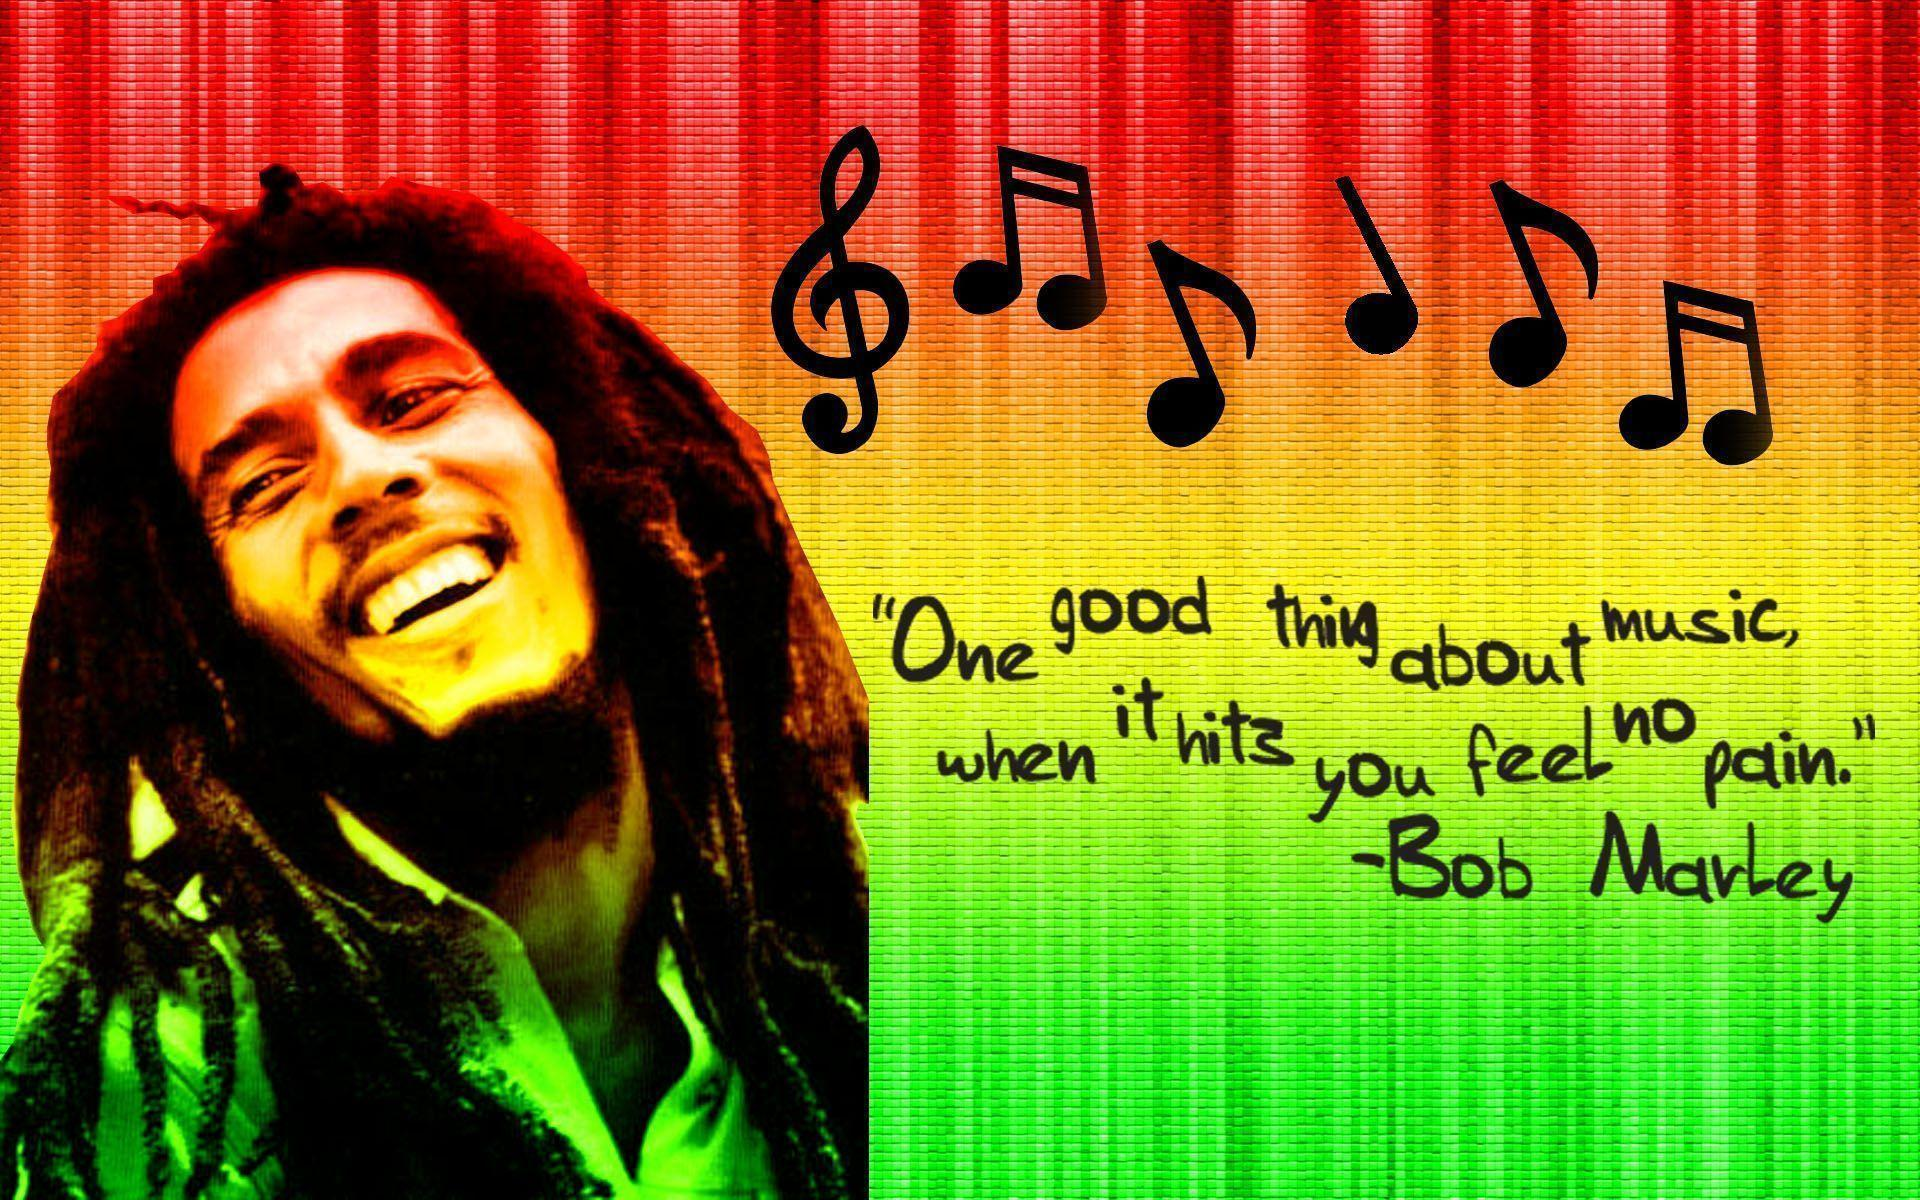 Bob marley hd wallpapers wallpaper cave - Rasta bob live wallpaper free download ...